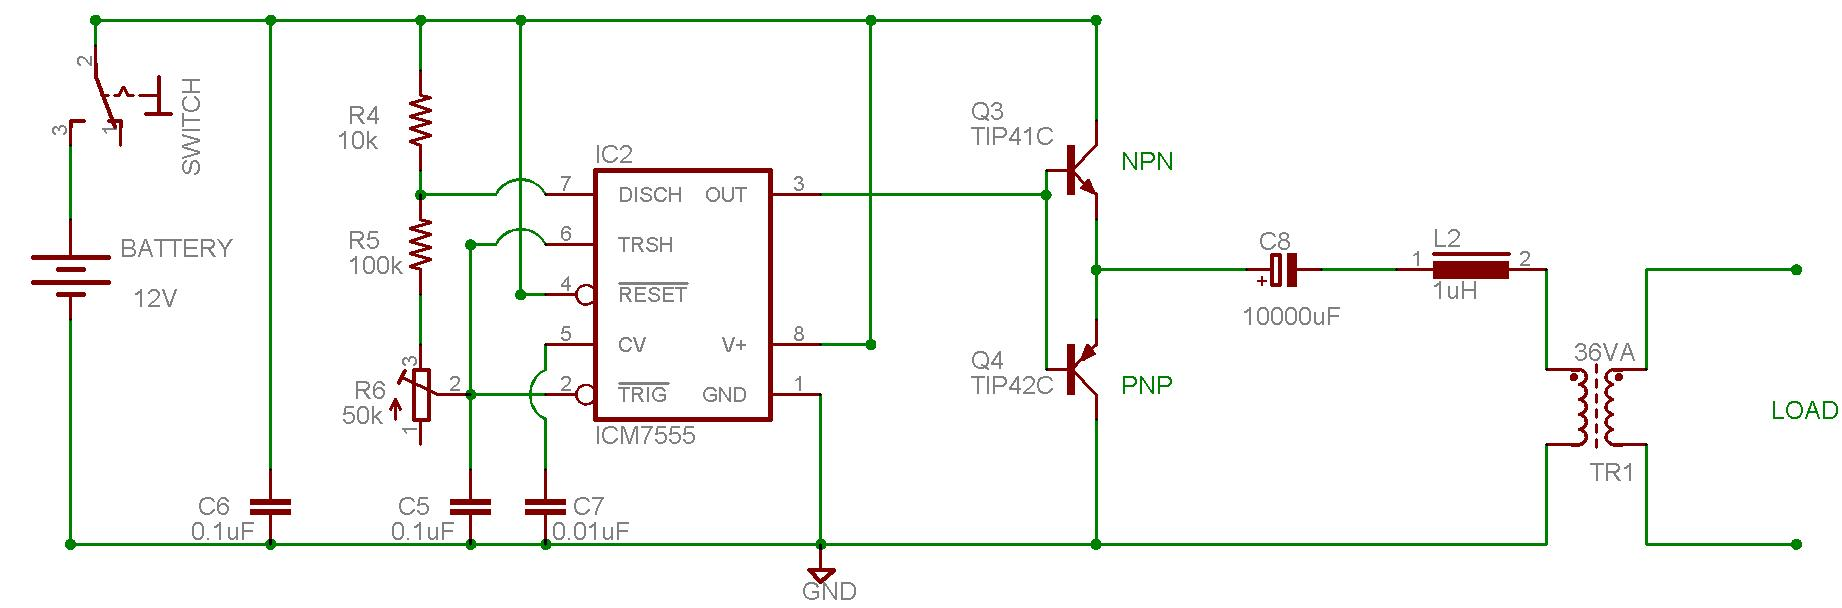 Dc to ac inverter wiring diagram wiring diagrams schematics aarons homepage forum dc to ac power inverter circuit diagram pdf 24vdc to 240vac inverter circuit pooptronica Choice Image